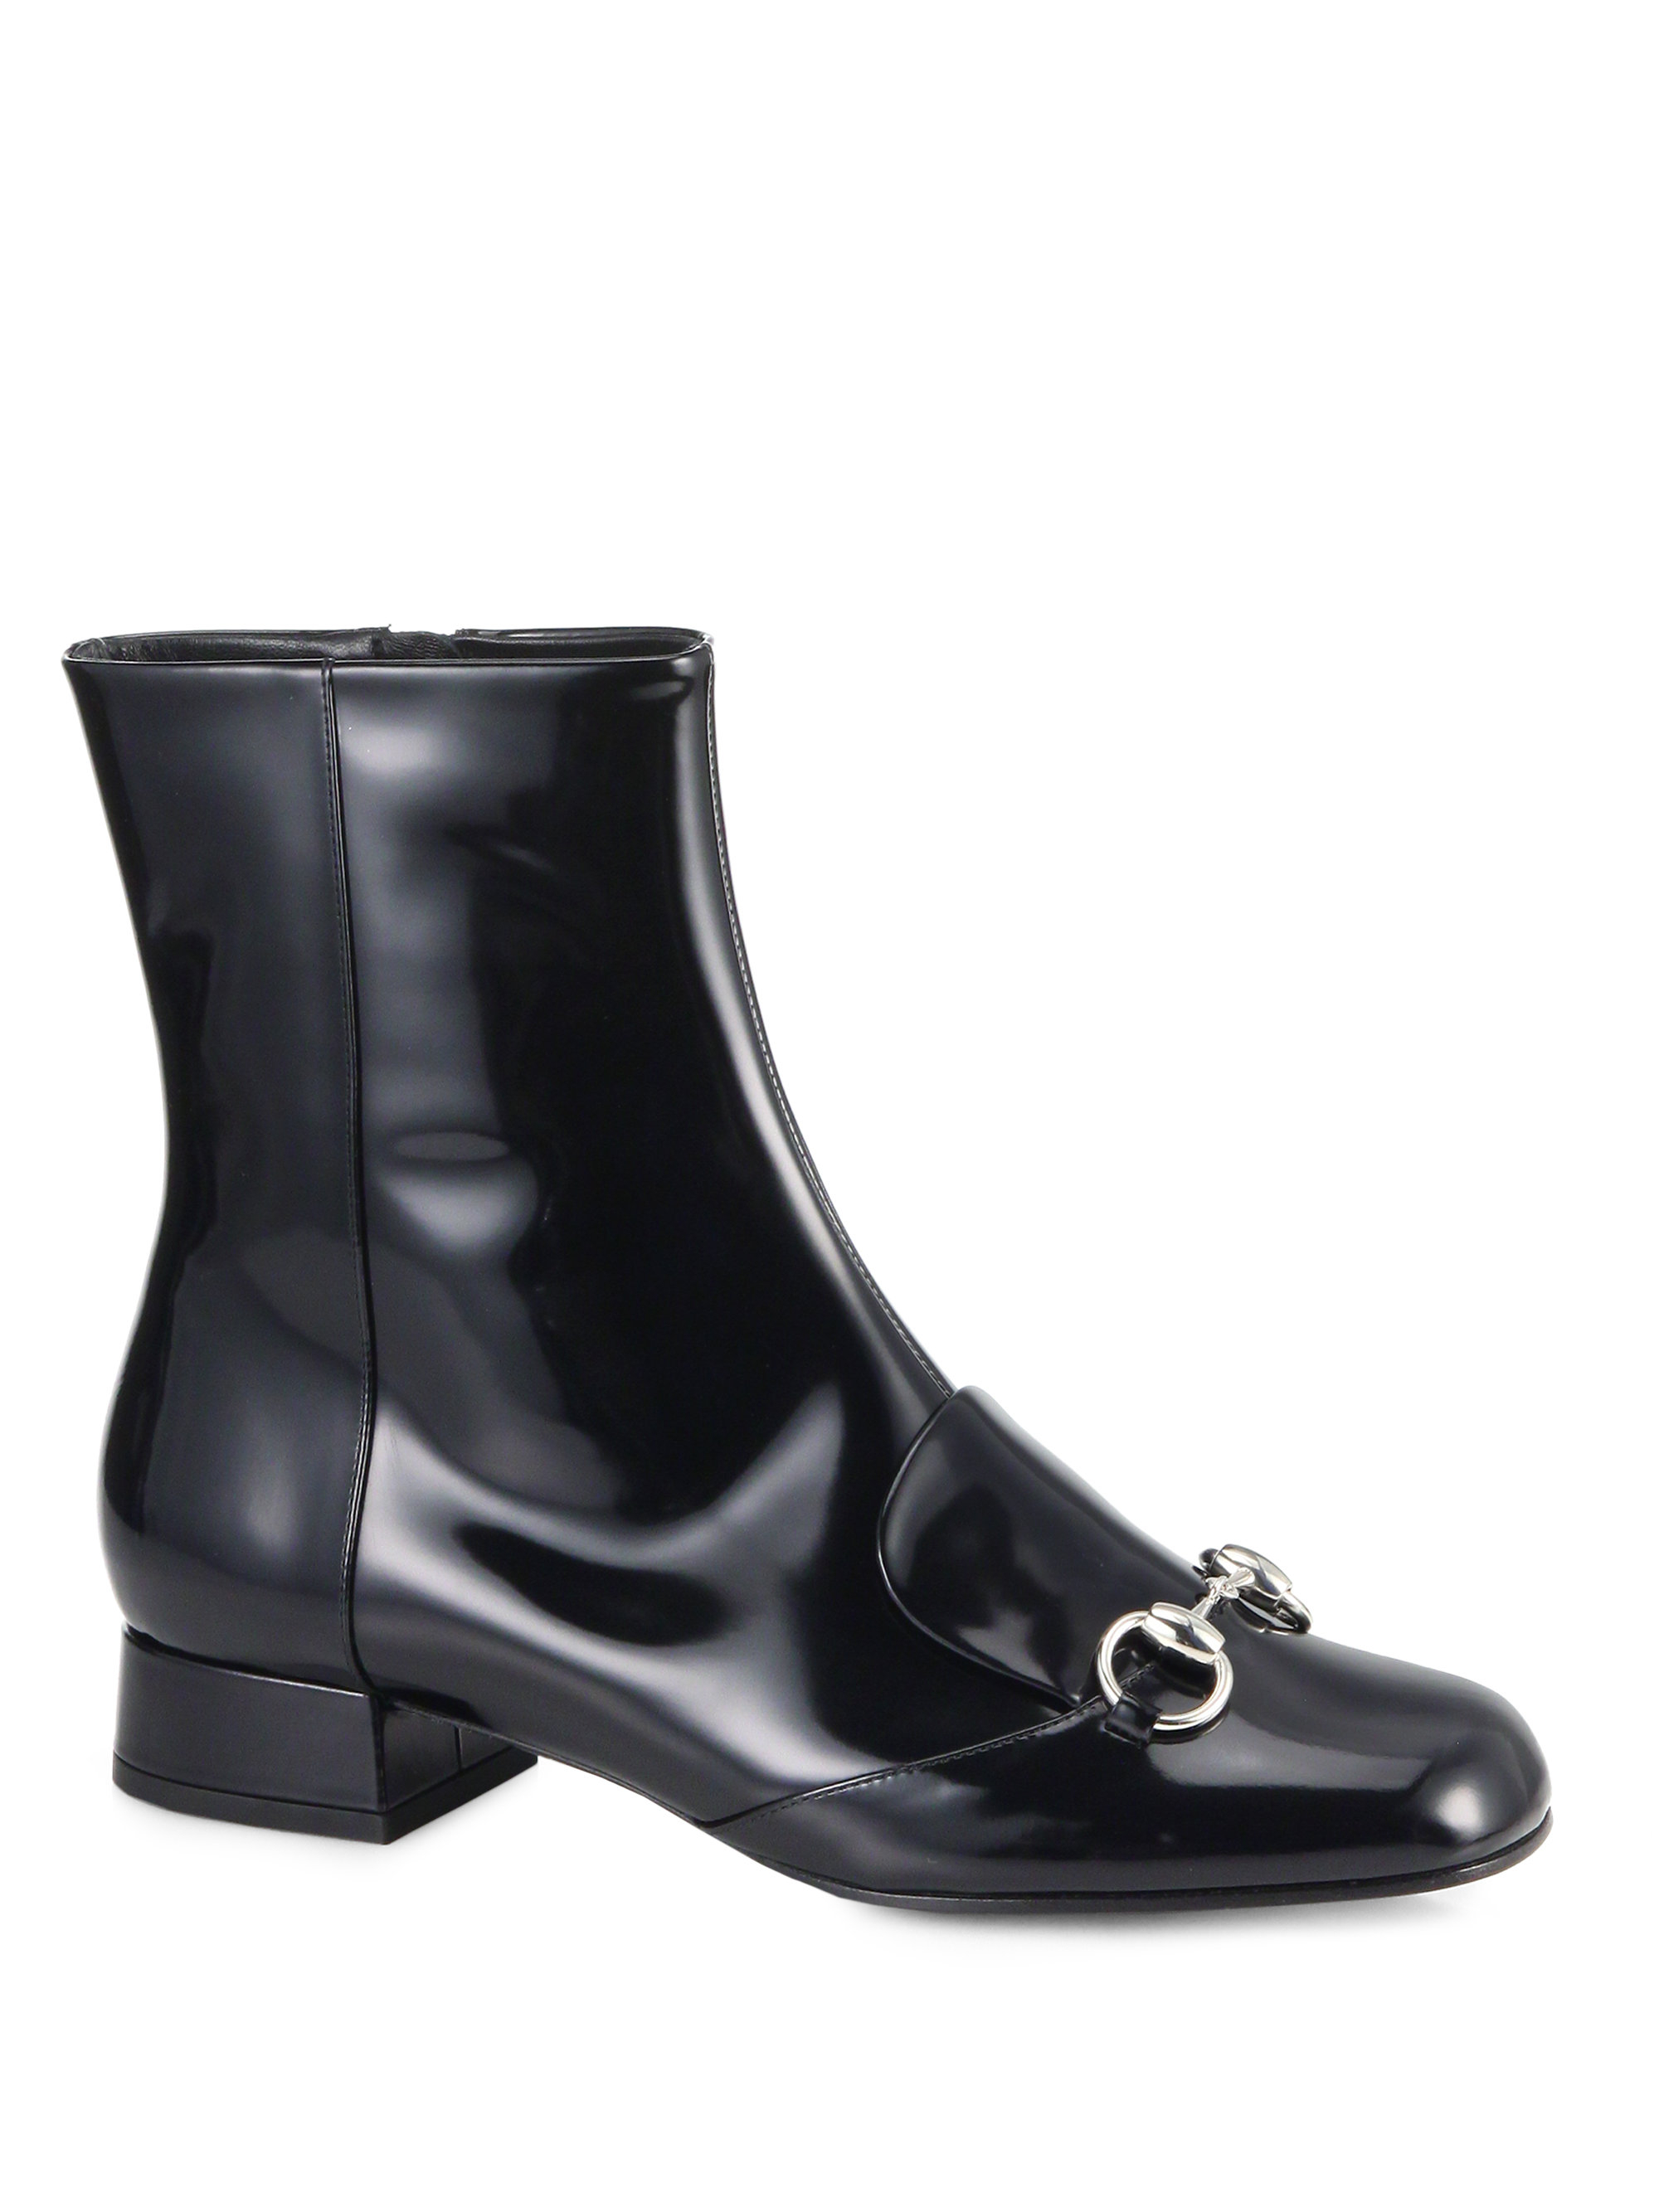 b88370f3c00525 Lyst - Gucci Lillian Horsebit Patent Leather Ankle Boots in Black